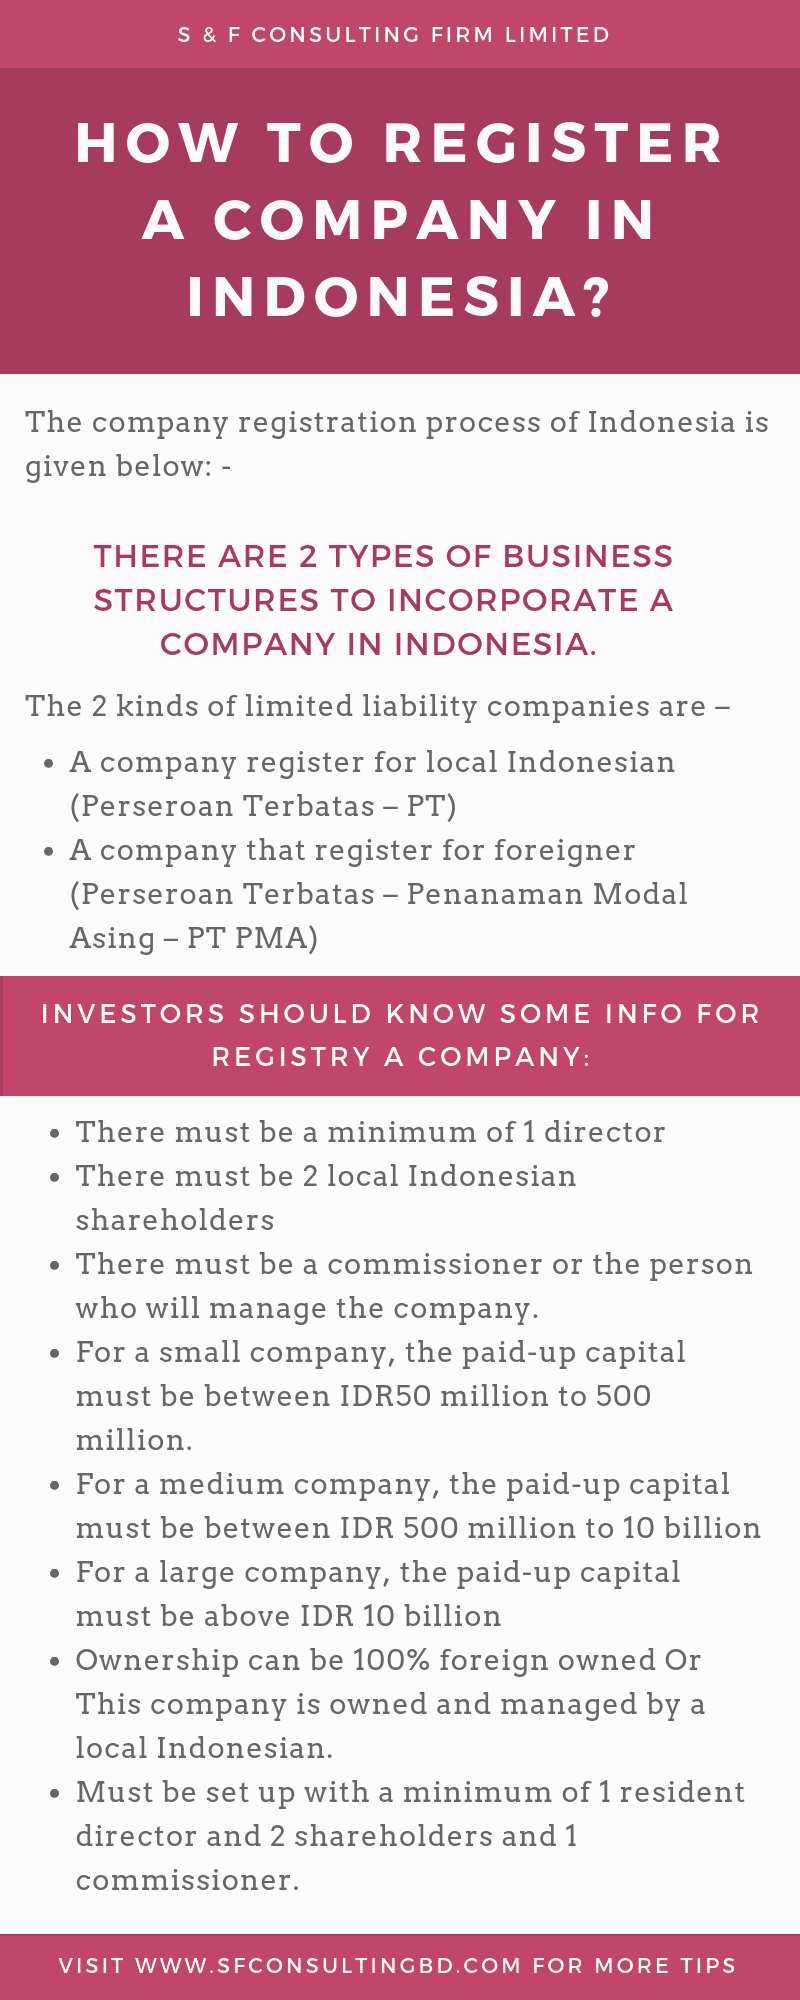 How to register a company in Indonesia